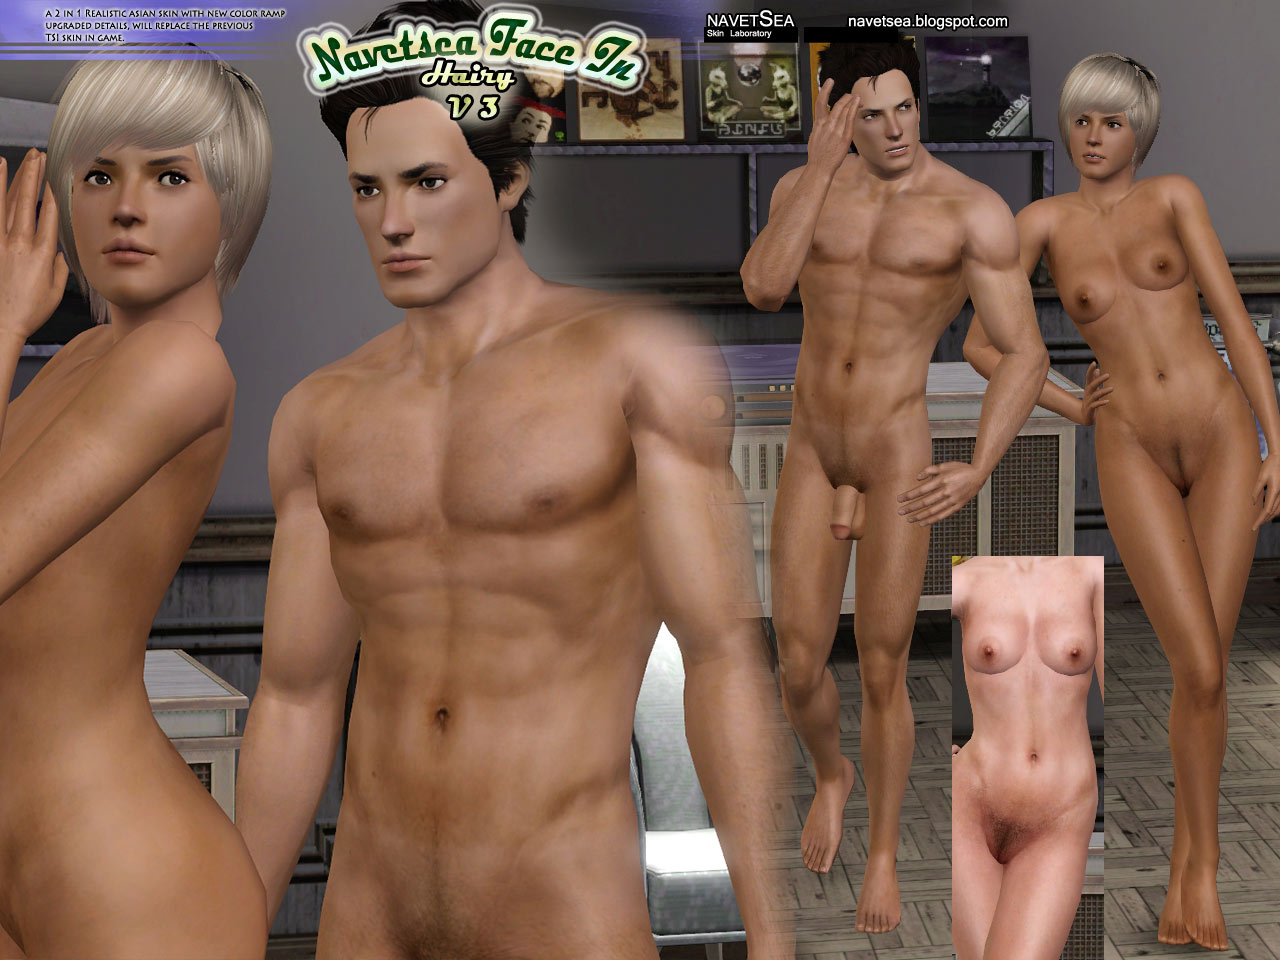 Sims 3 naked sims sexual images